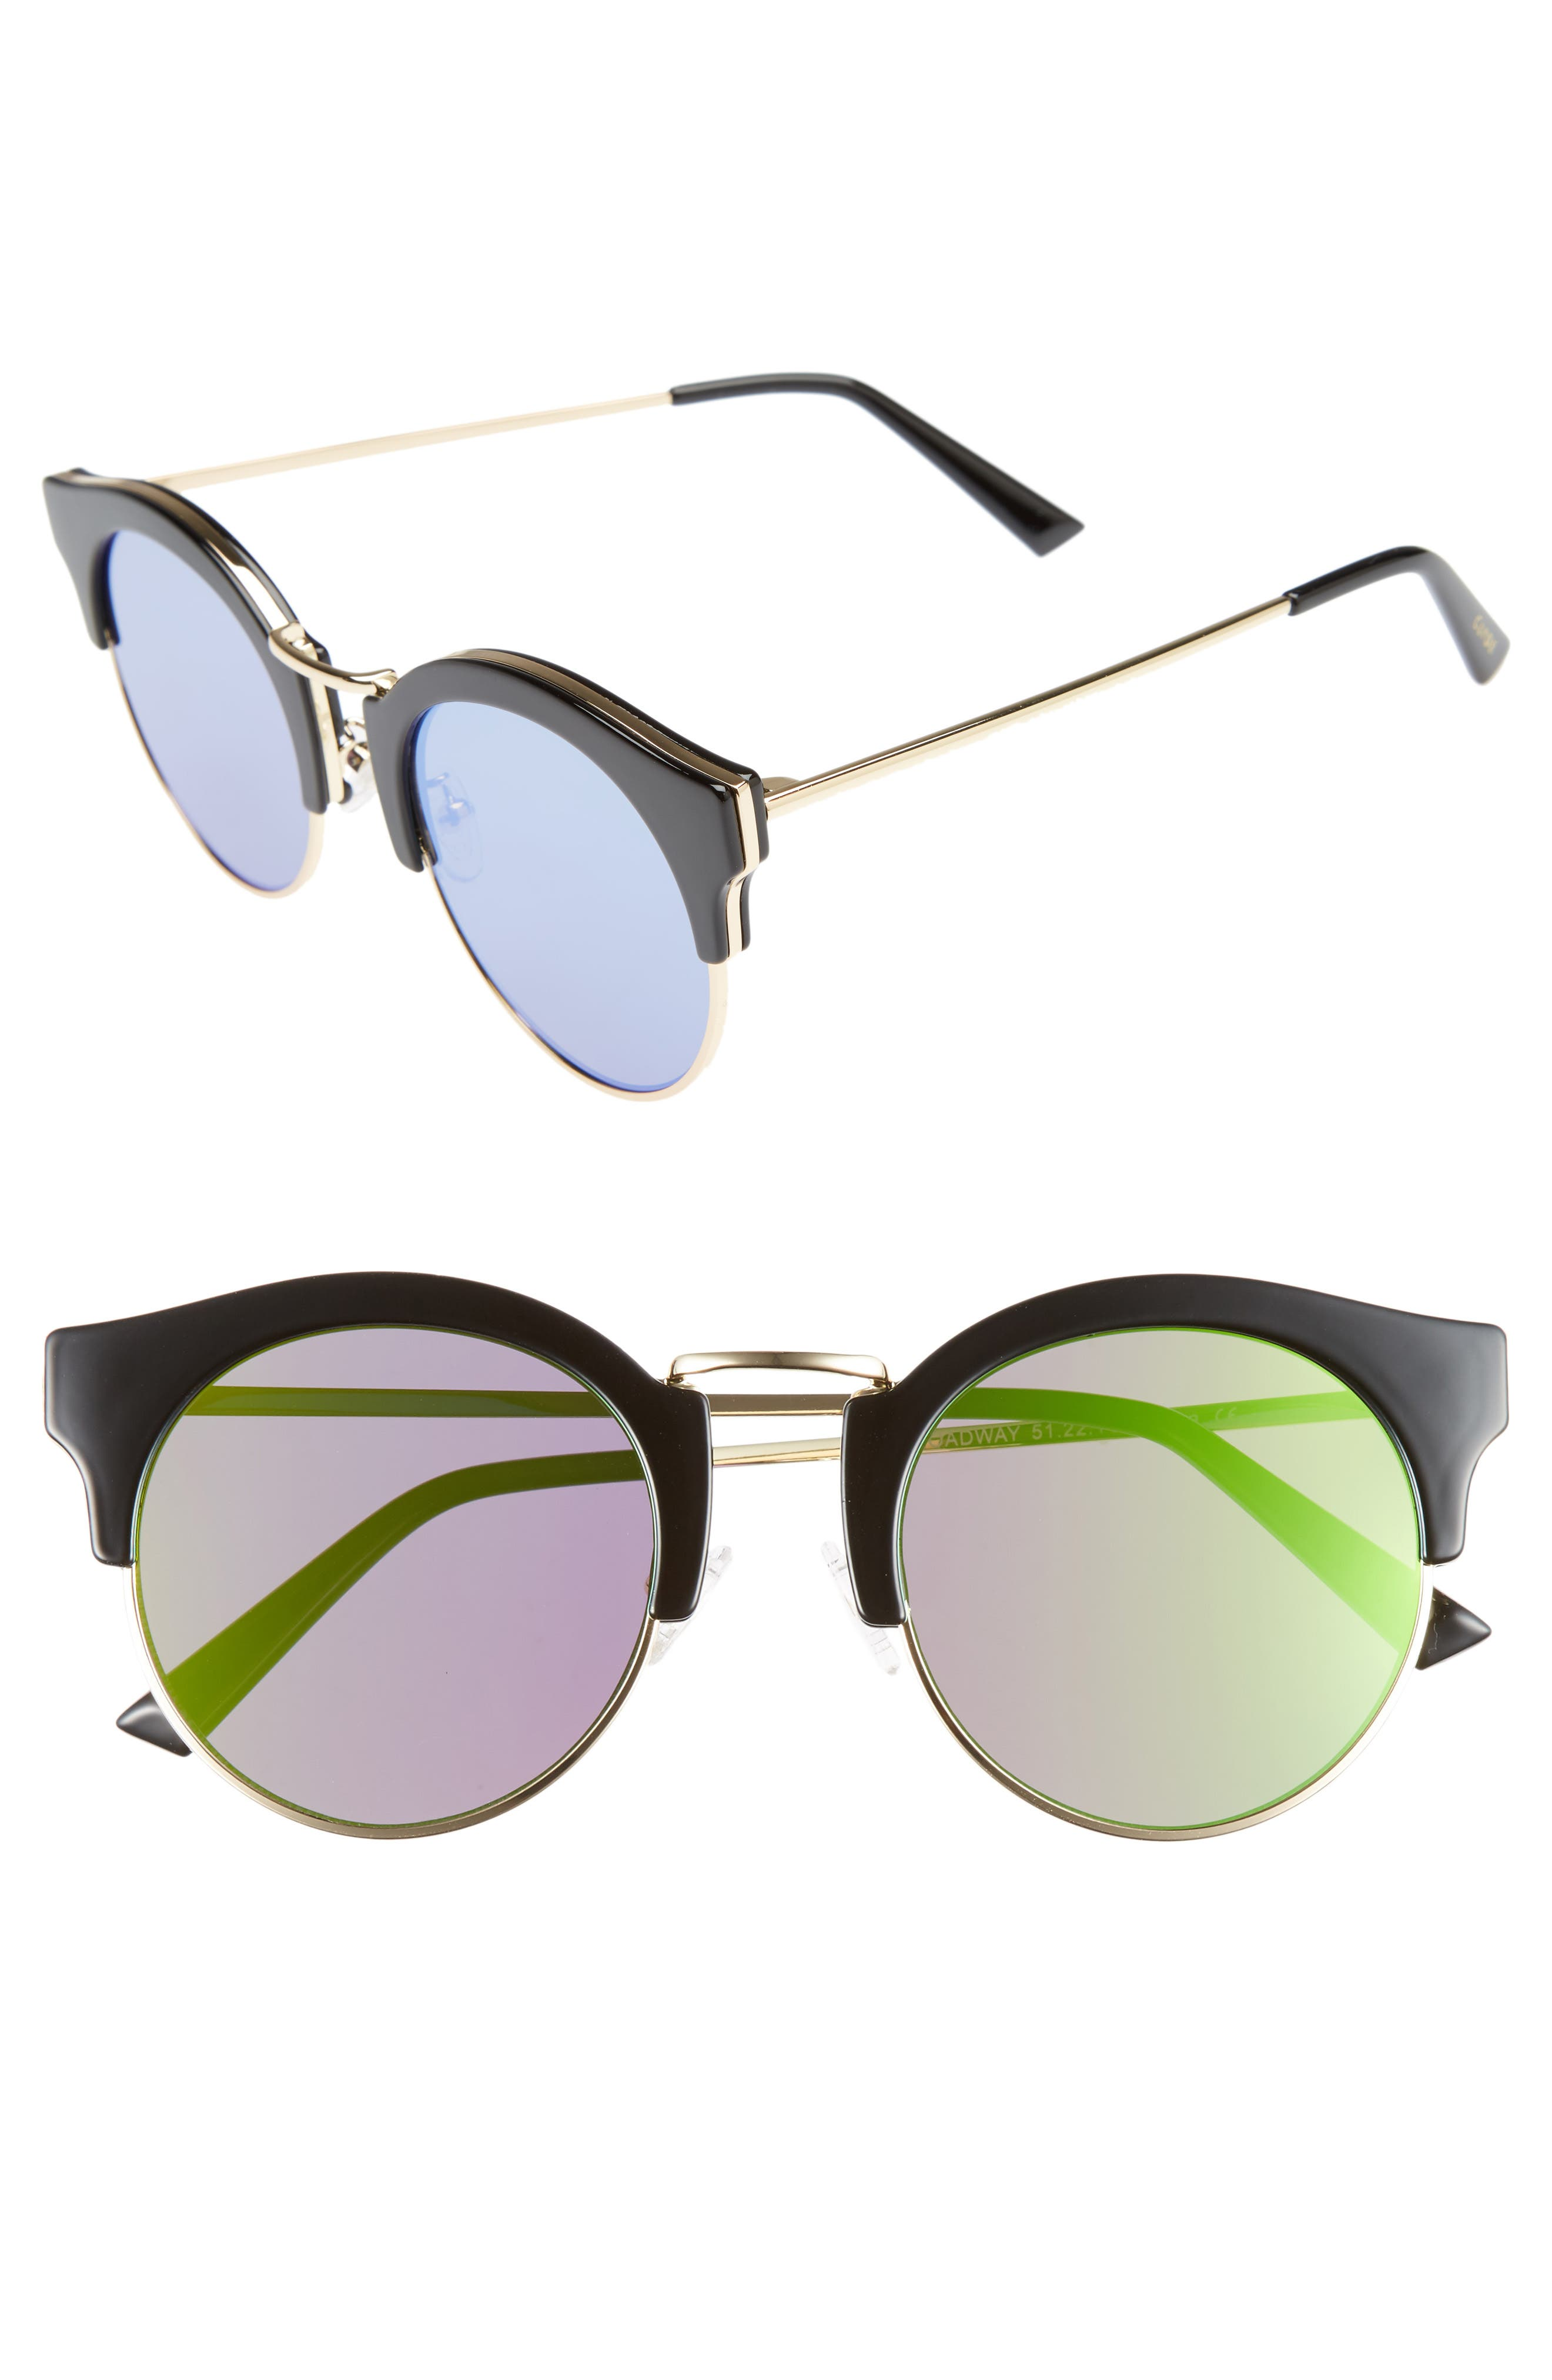 Broadway 51mm Retro Sunglasses,                         Main,                         color, 300